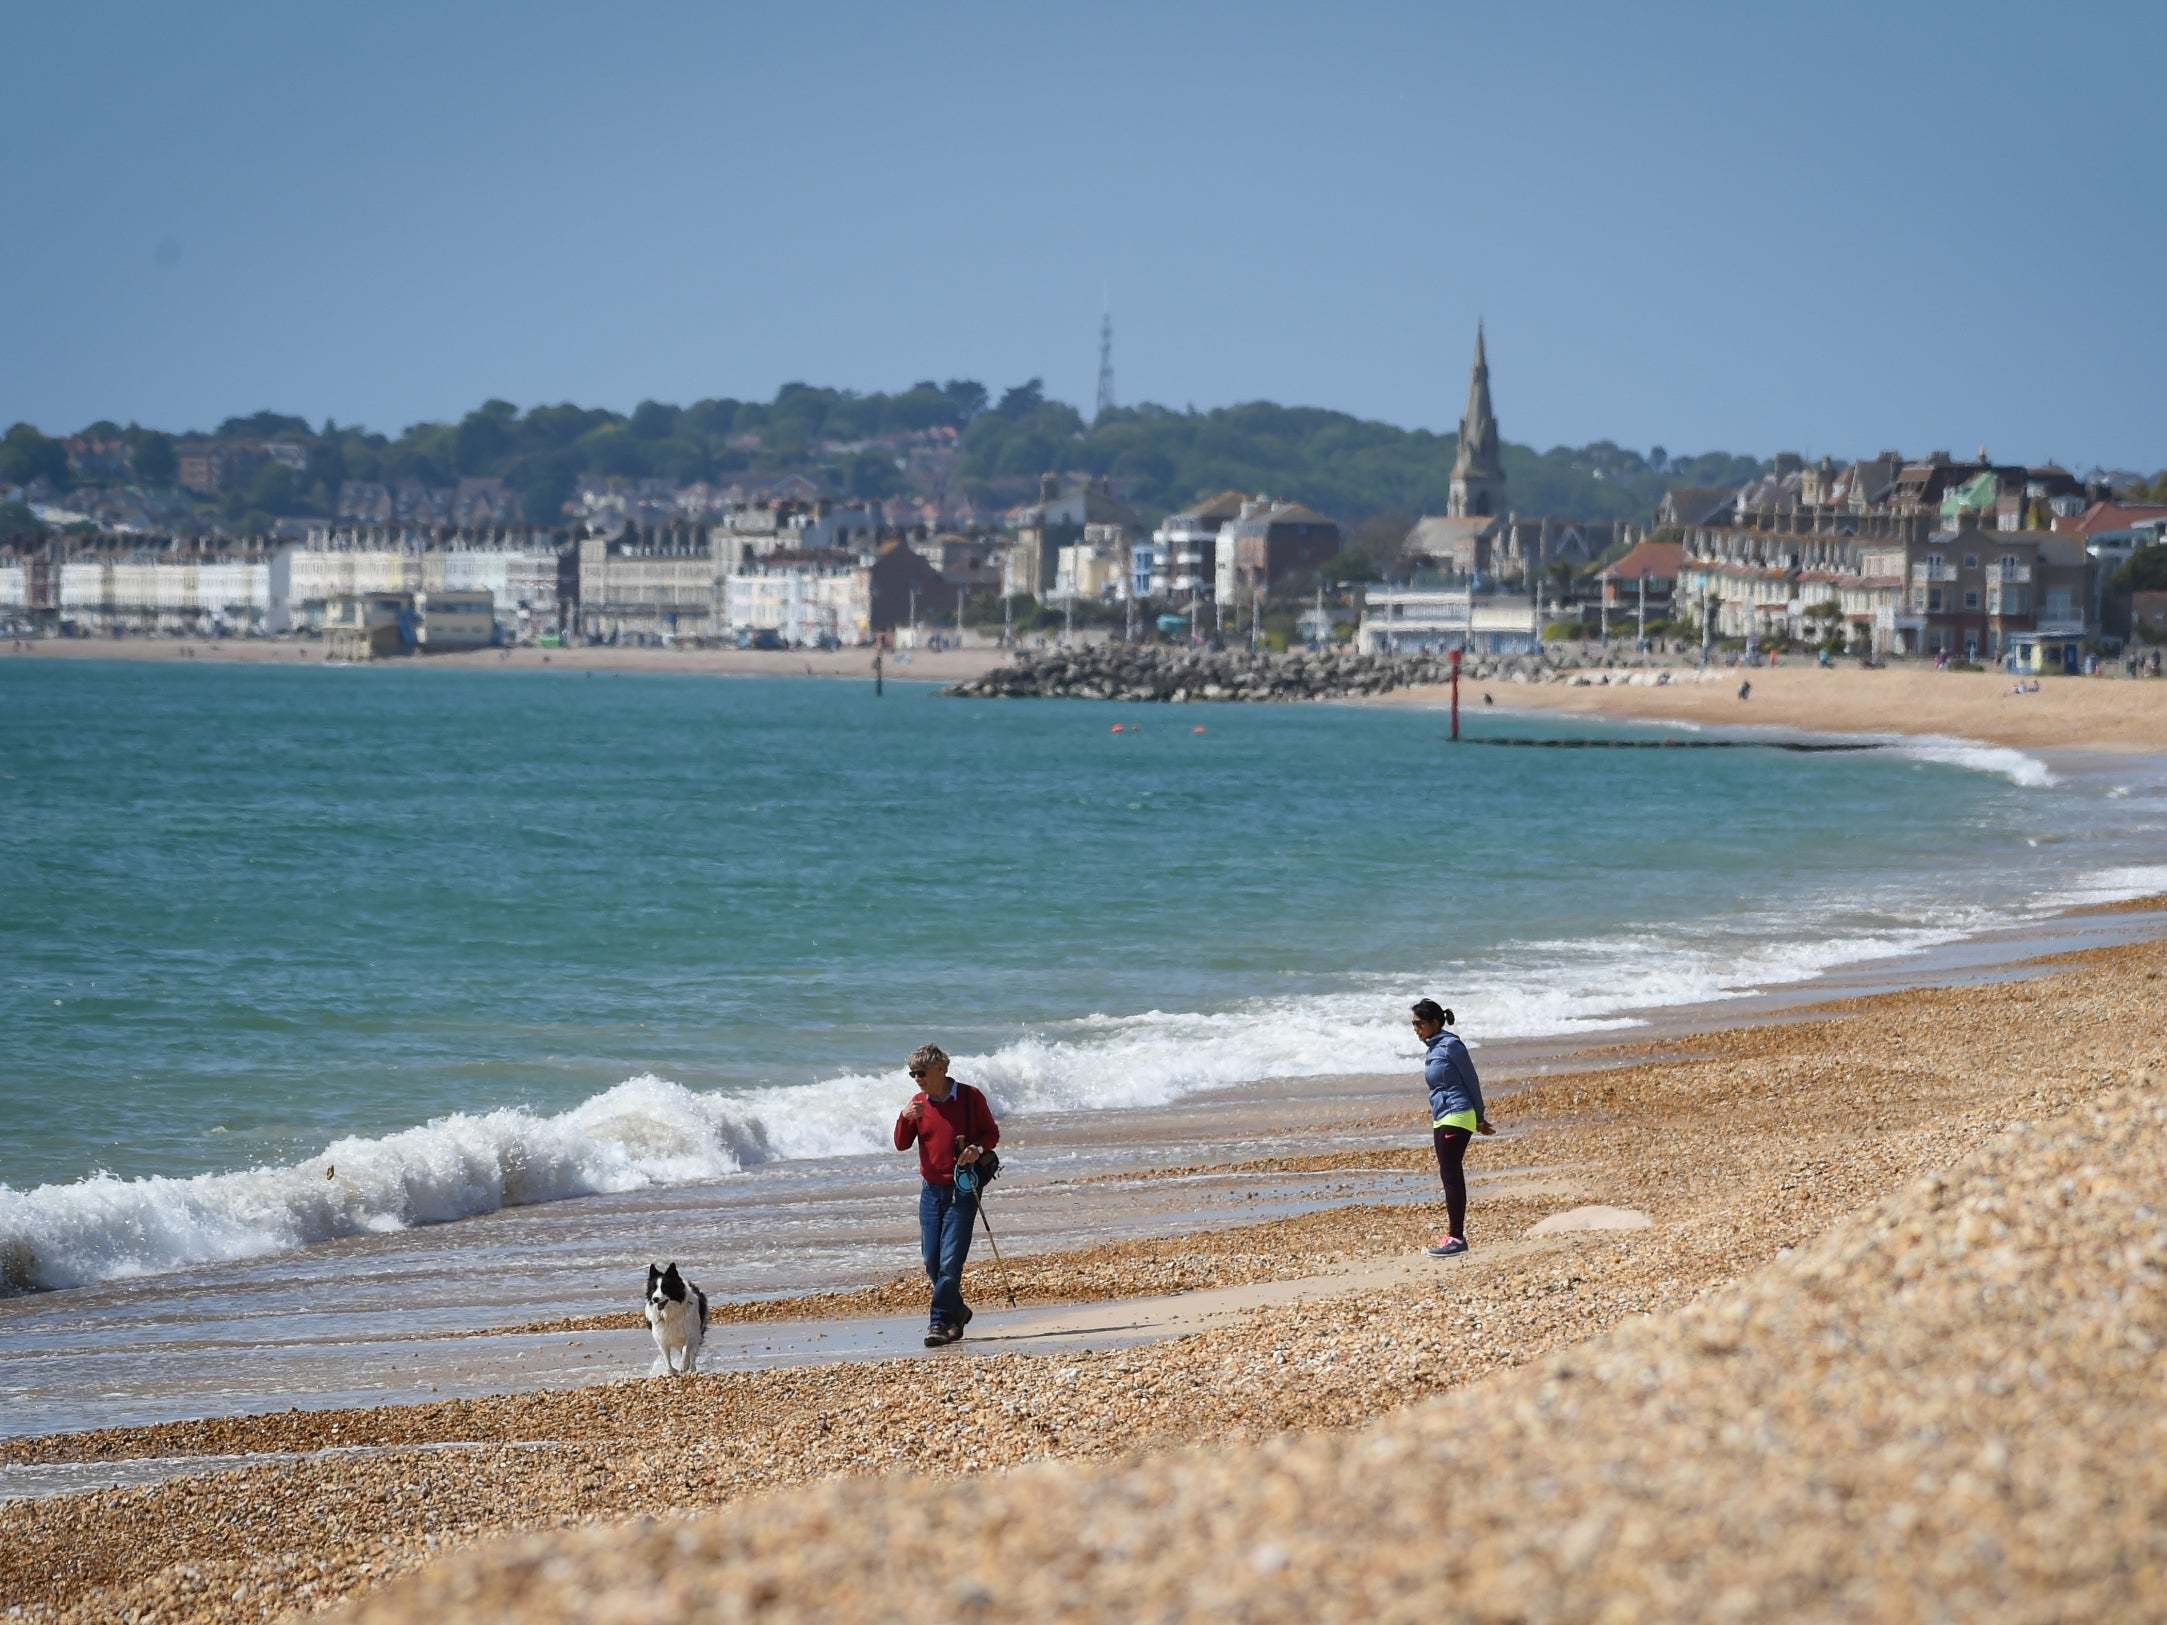 UK weather: Warm, sunny bank holiday to see mercury hit 24C in London